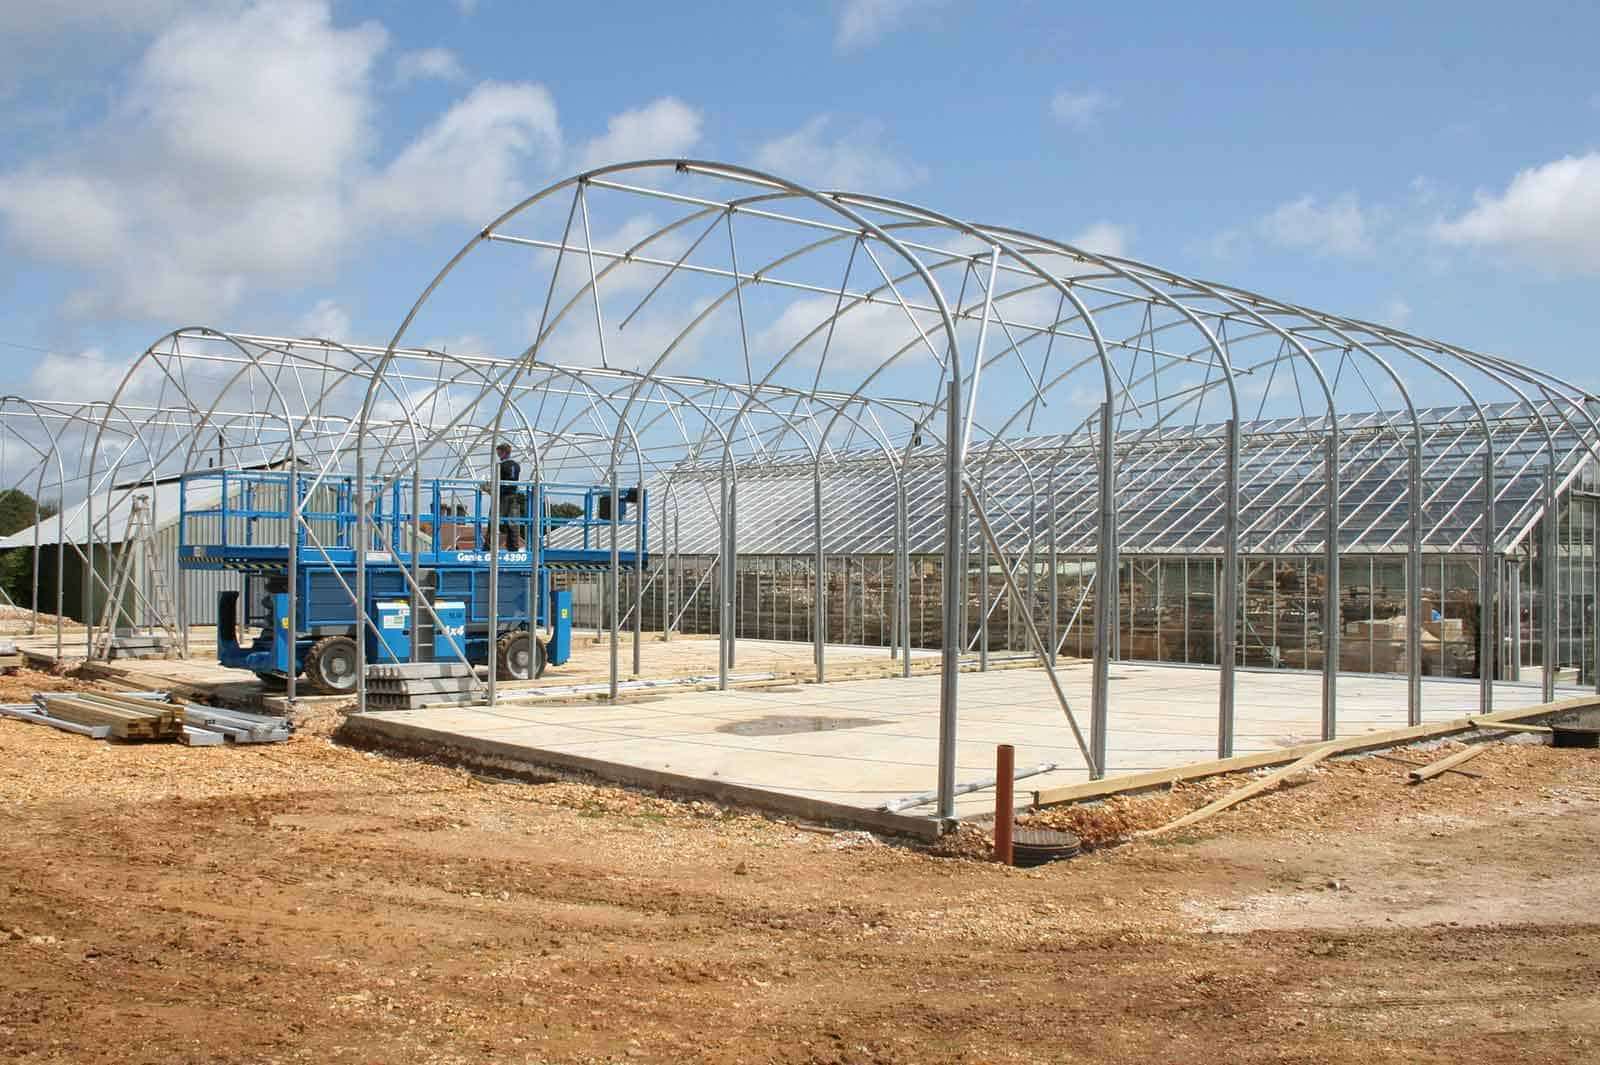 Commercial design & build - steel framed curved roof fabric structure designed and manufactured by McGregor Polytunnels